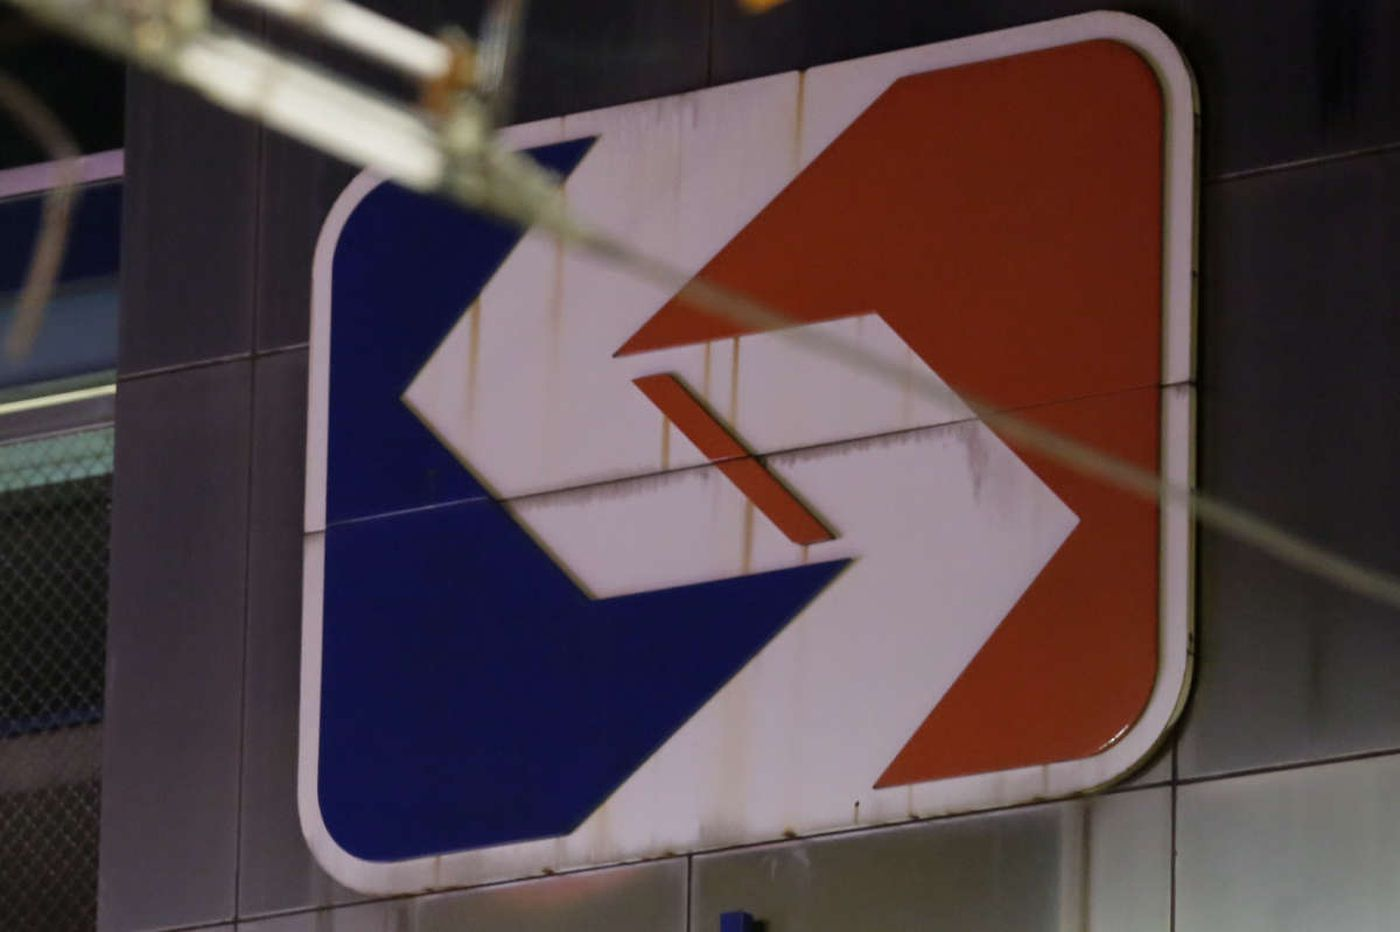 Fired SEPTA manager collected $21K in false overtime, complaint says